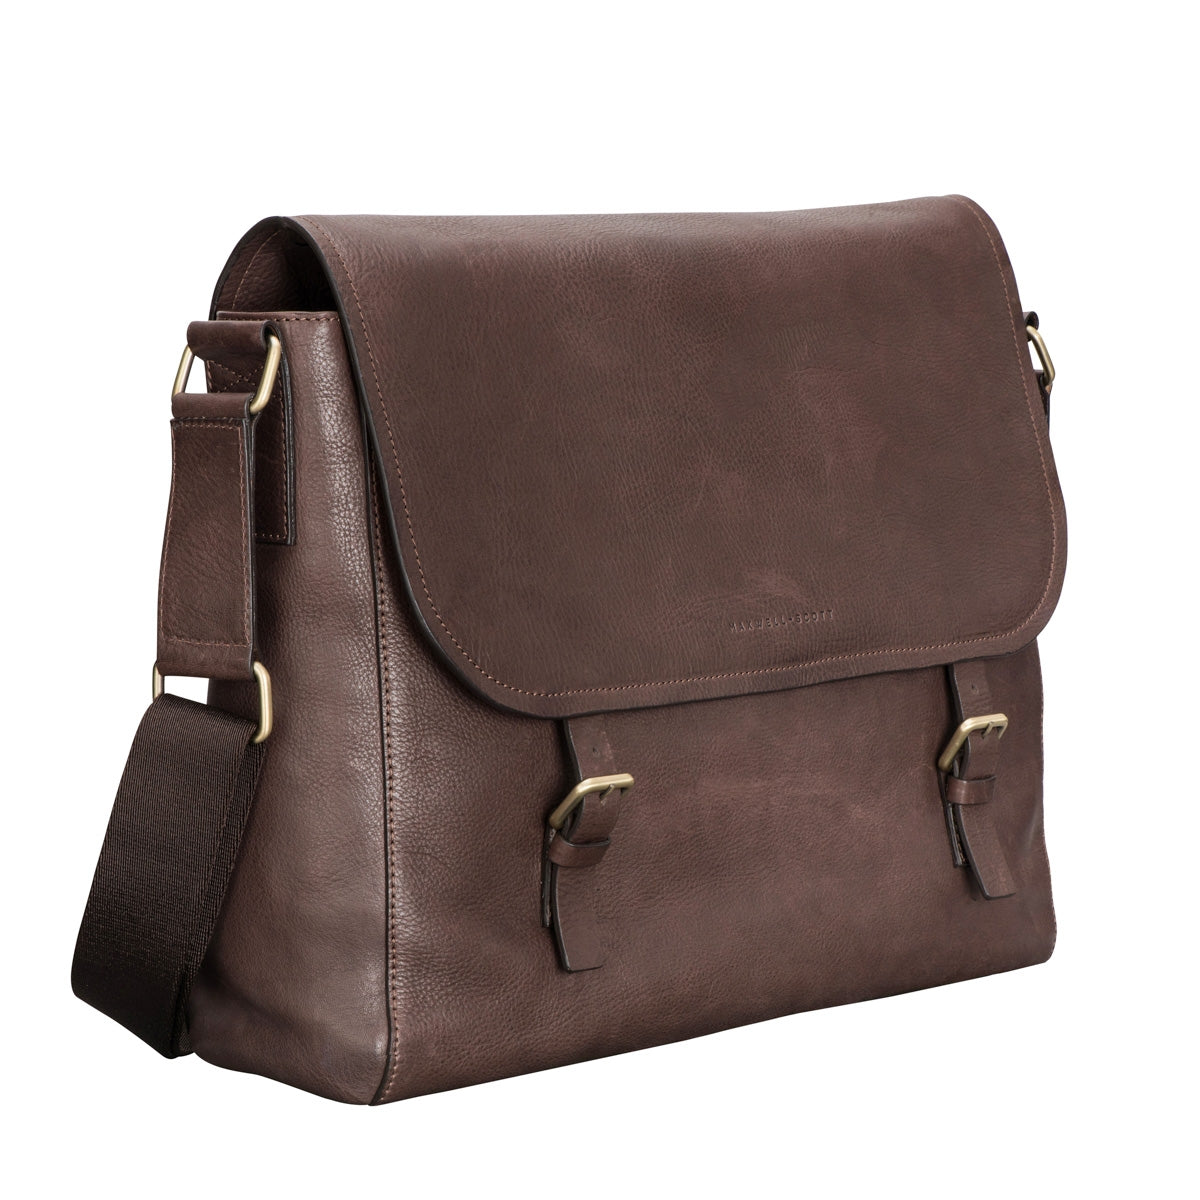 Image 2 of the 'Ravenna' Brown Leather Classic Men's Satchel Bag